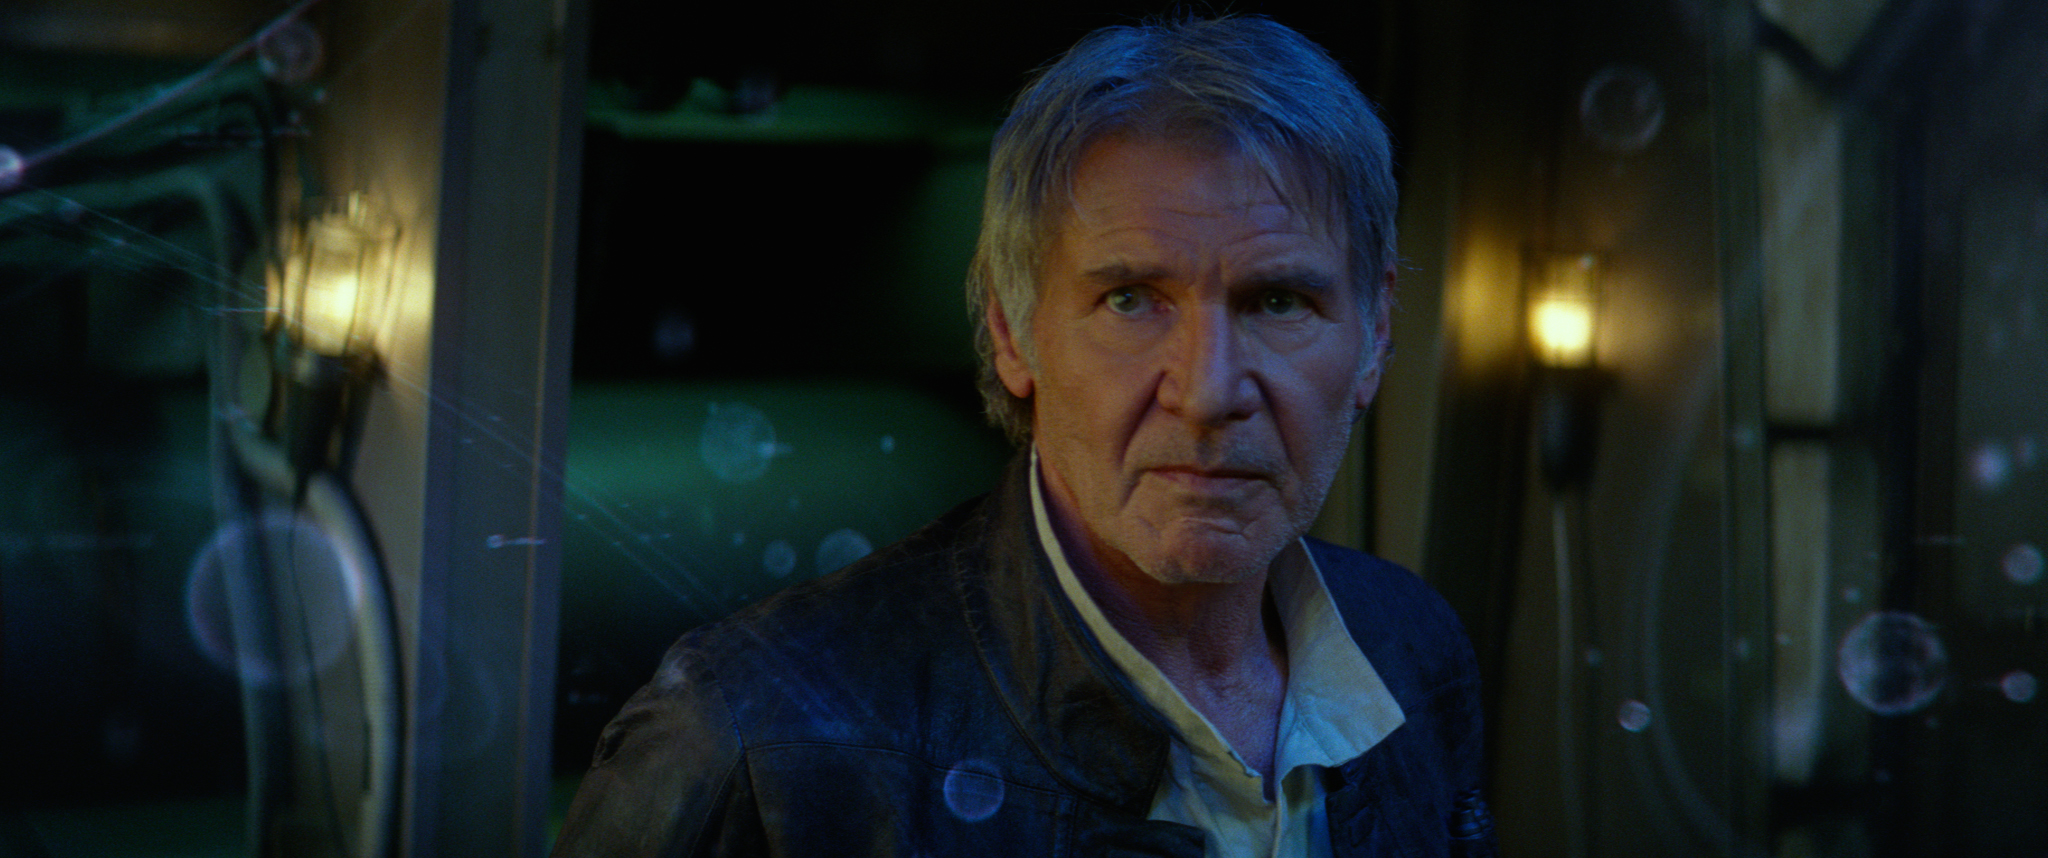 Harrison Ford as Han Solo in  Star Wars: The Force Awakens.